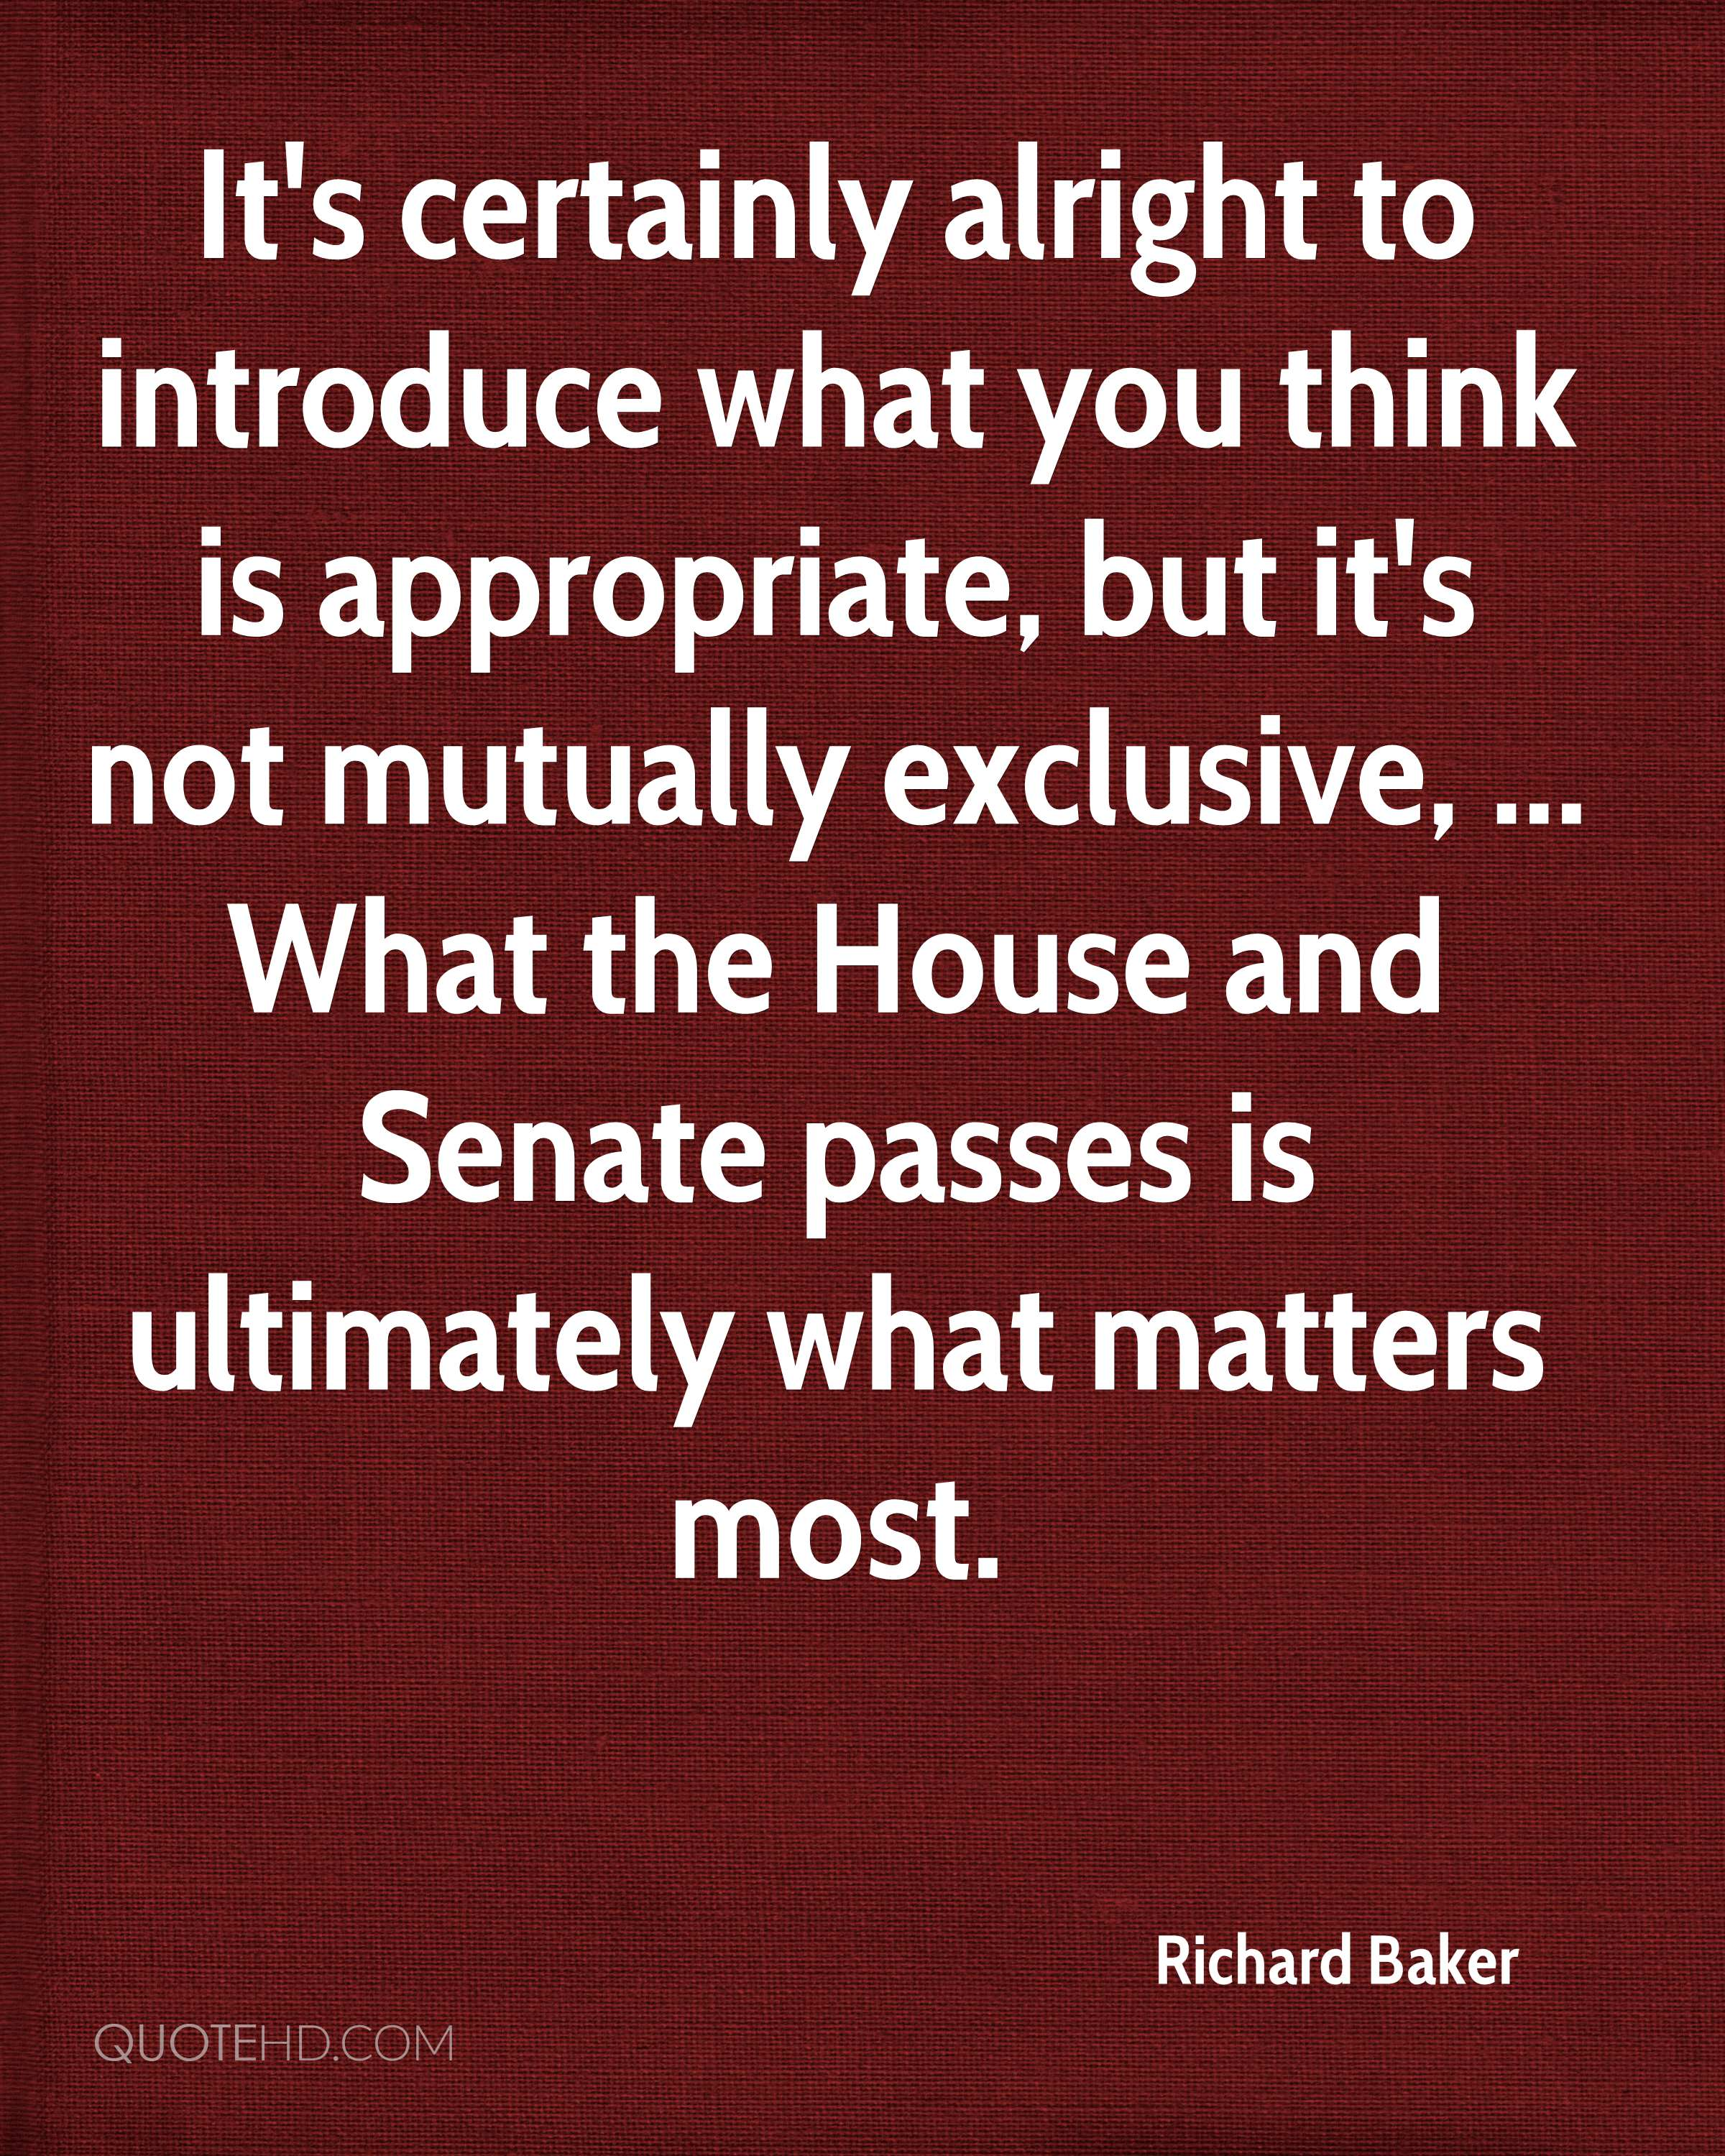 It's certainly alright to introduce what you think is appropriate, but it's not mutually exclusive, ... What the House and Senate passes is ultimately what matters most.